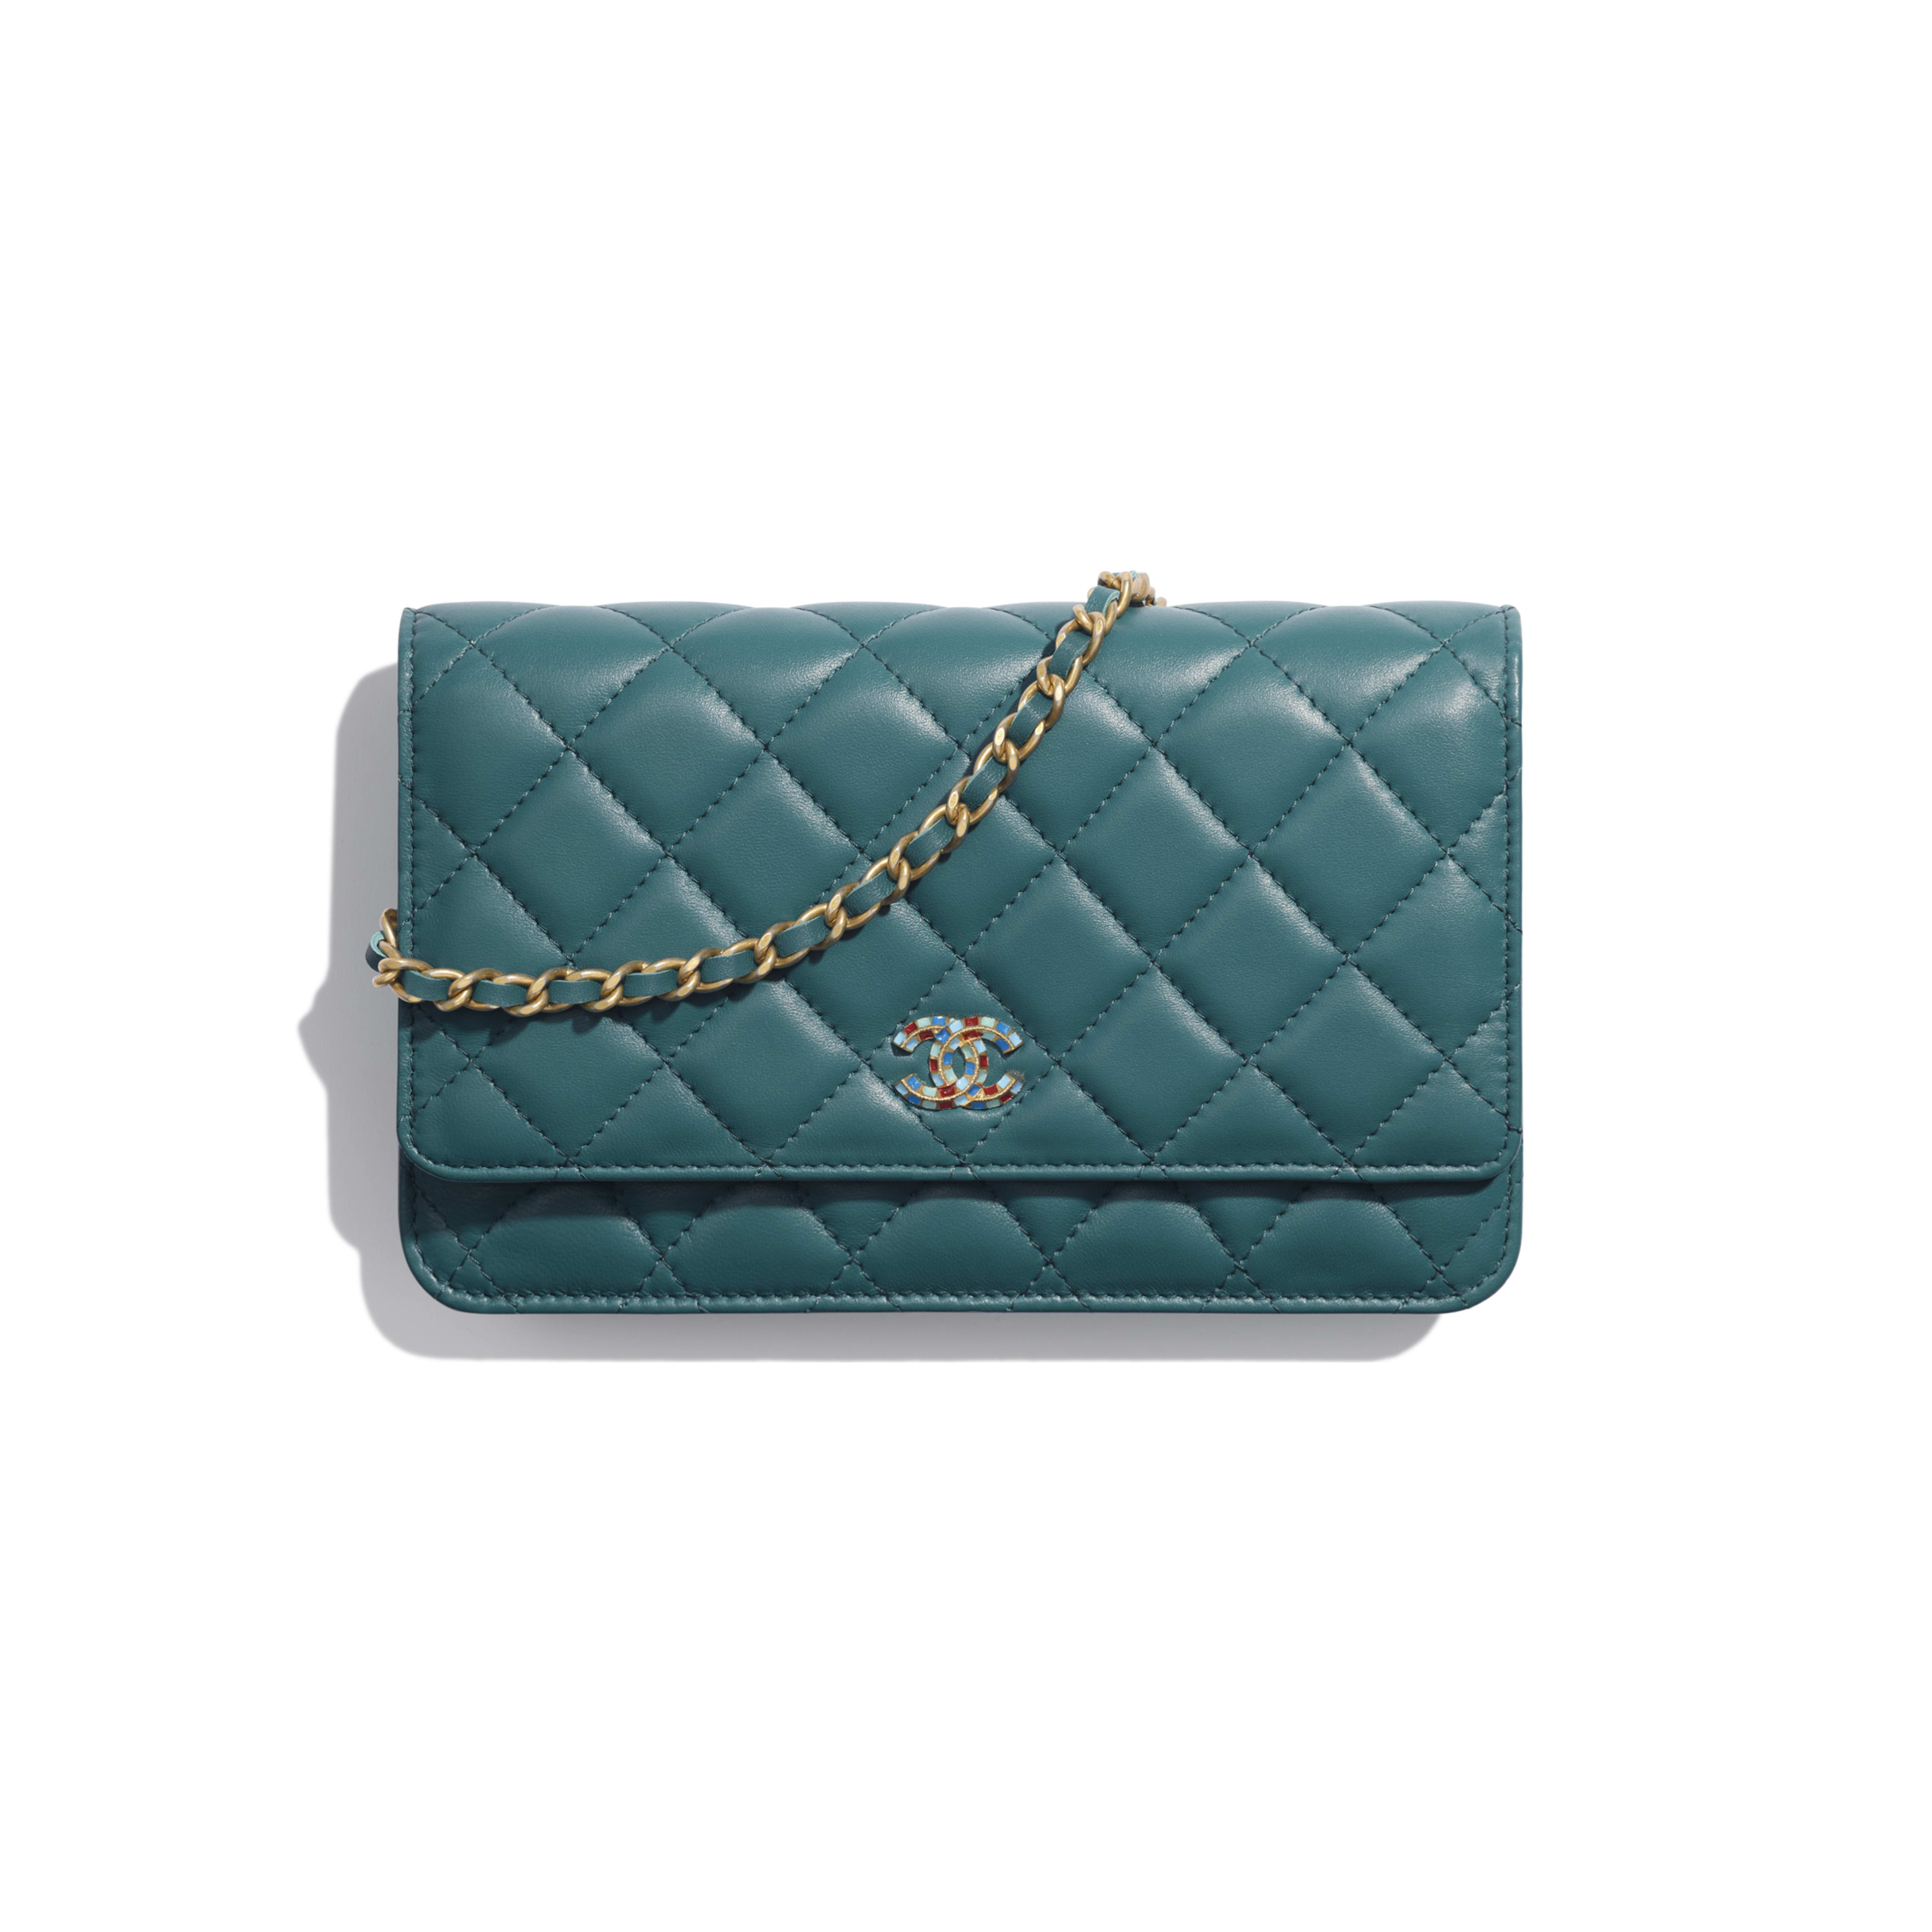 Wallet on Chain - Dark Turquoise - Lambskin & Gold-Tone Metal - Default view - see full sized version